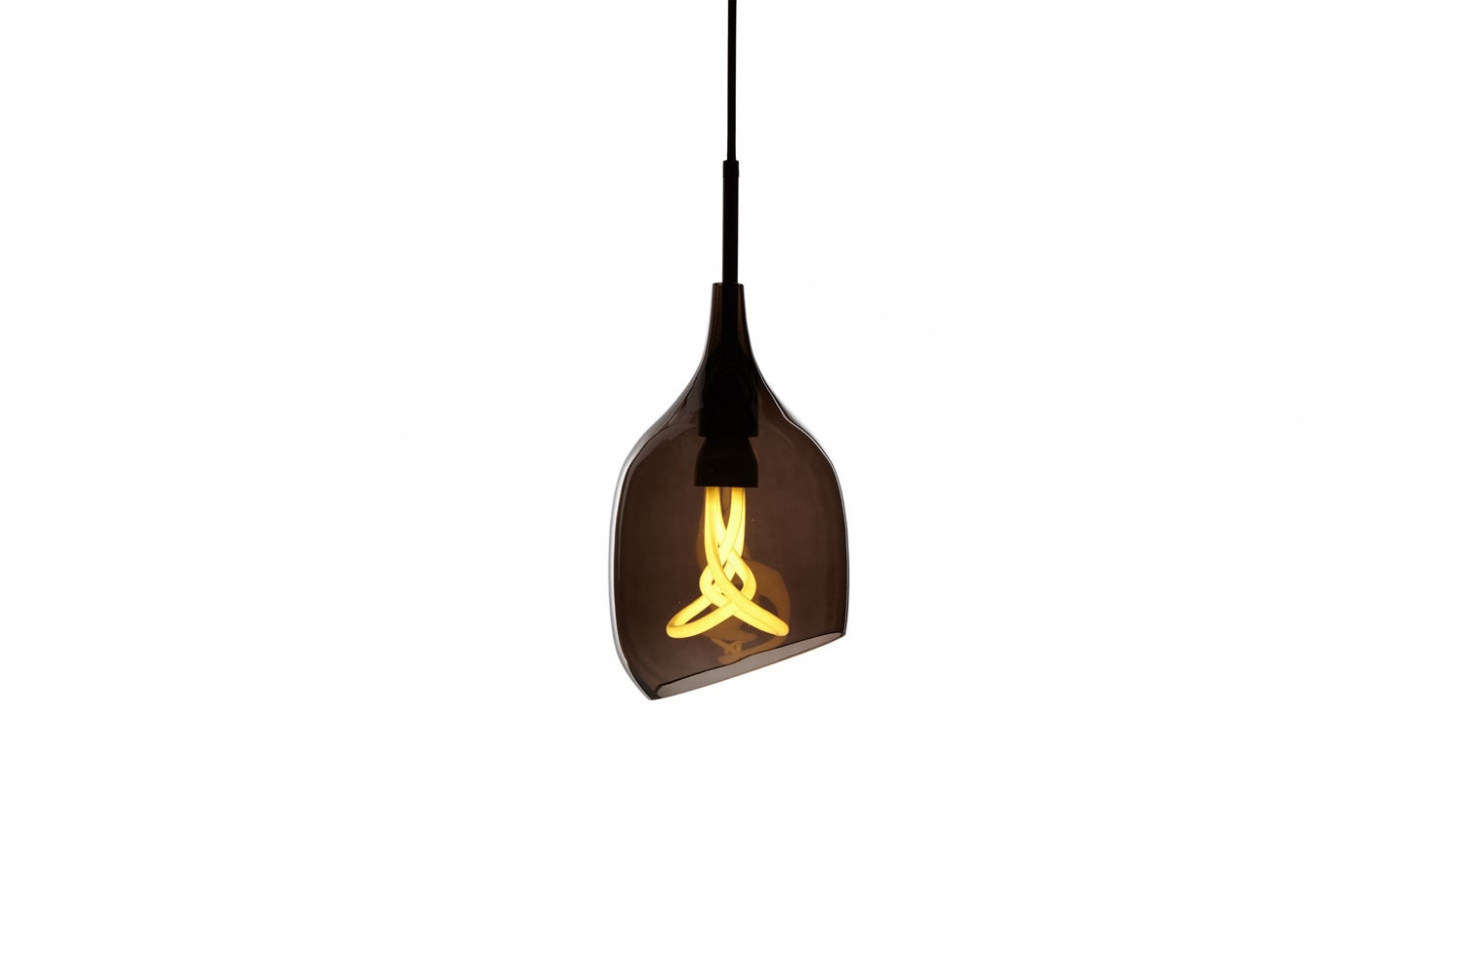 The Decode Vessel Pendant in Smoke Gray is $325 at Horne.